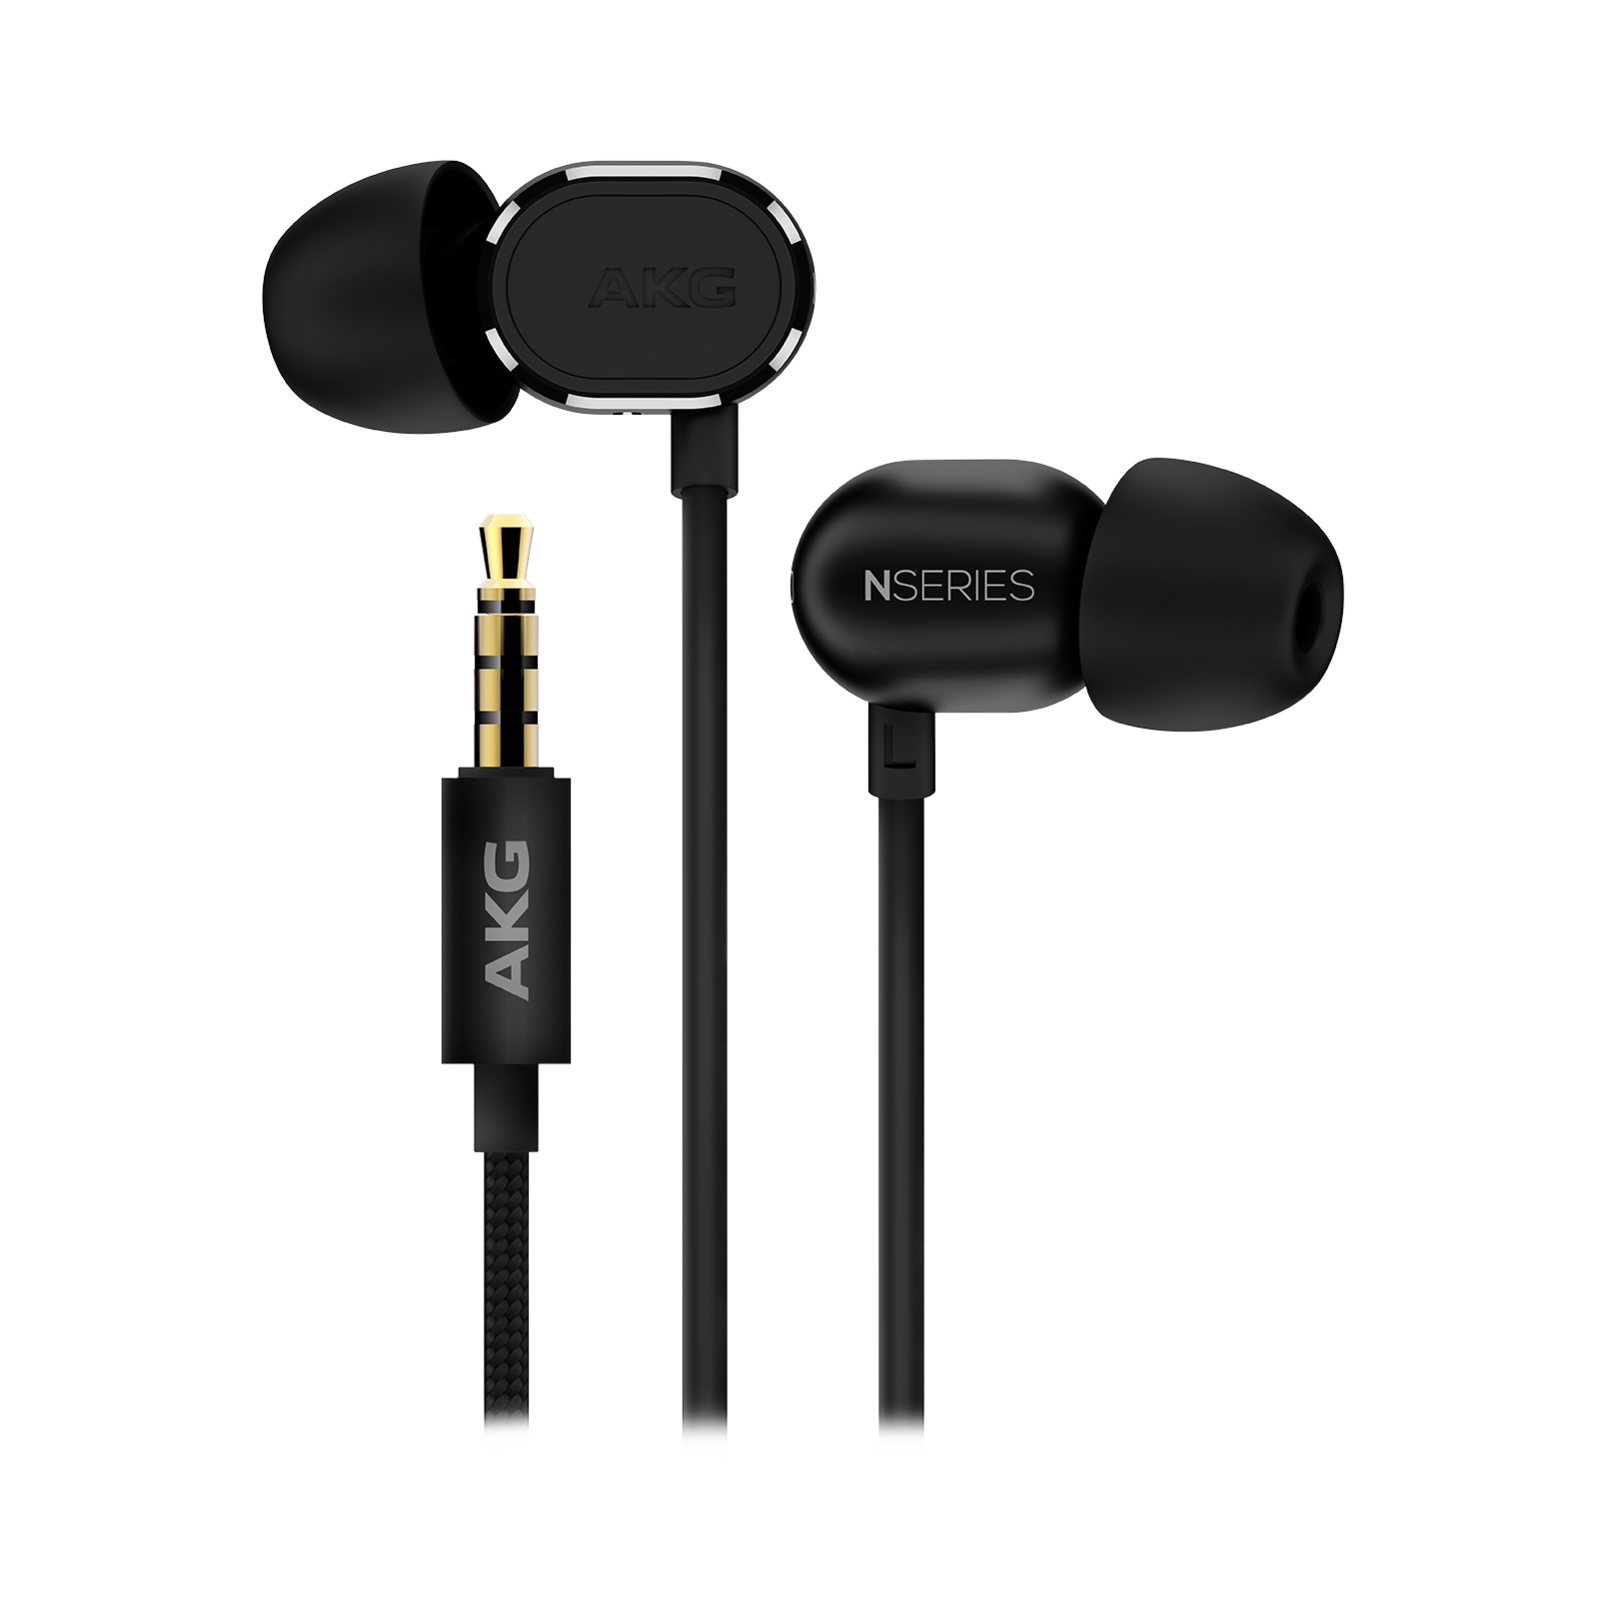 N20U - Black - Reference class in-ear headphones with universal 3 button remote. - Detailshot 1